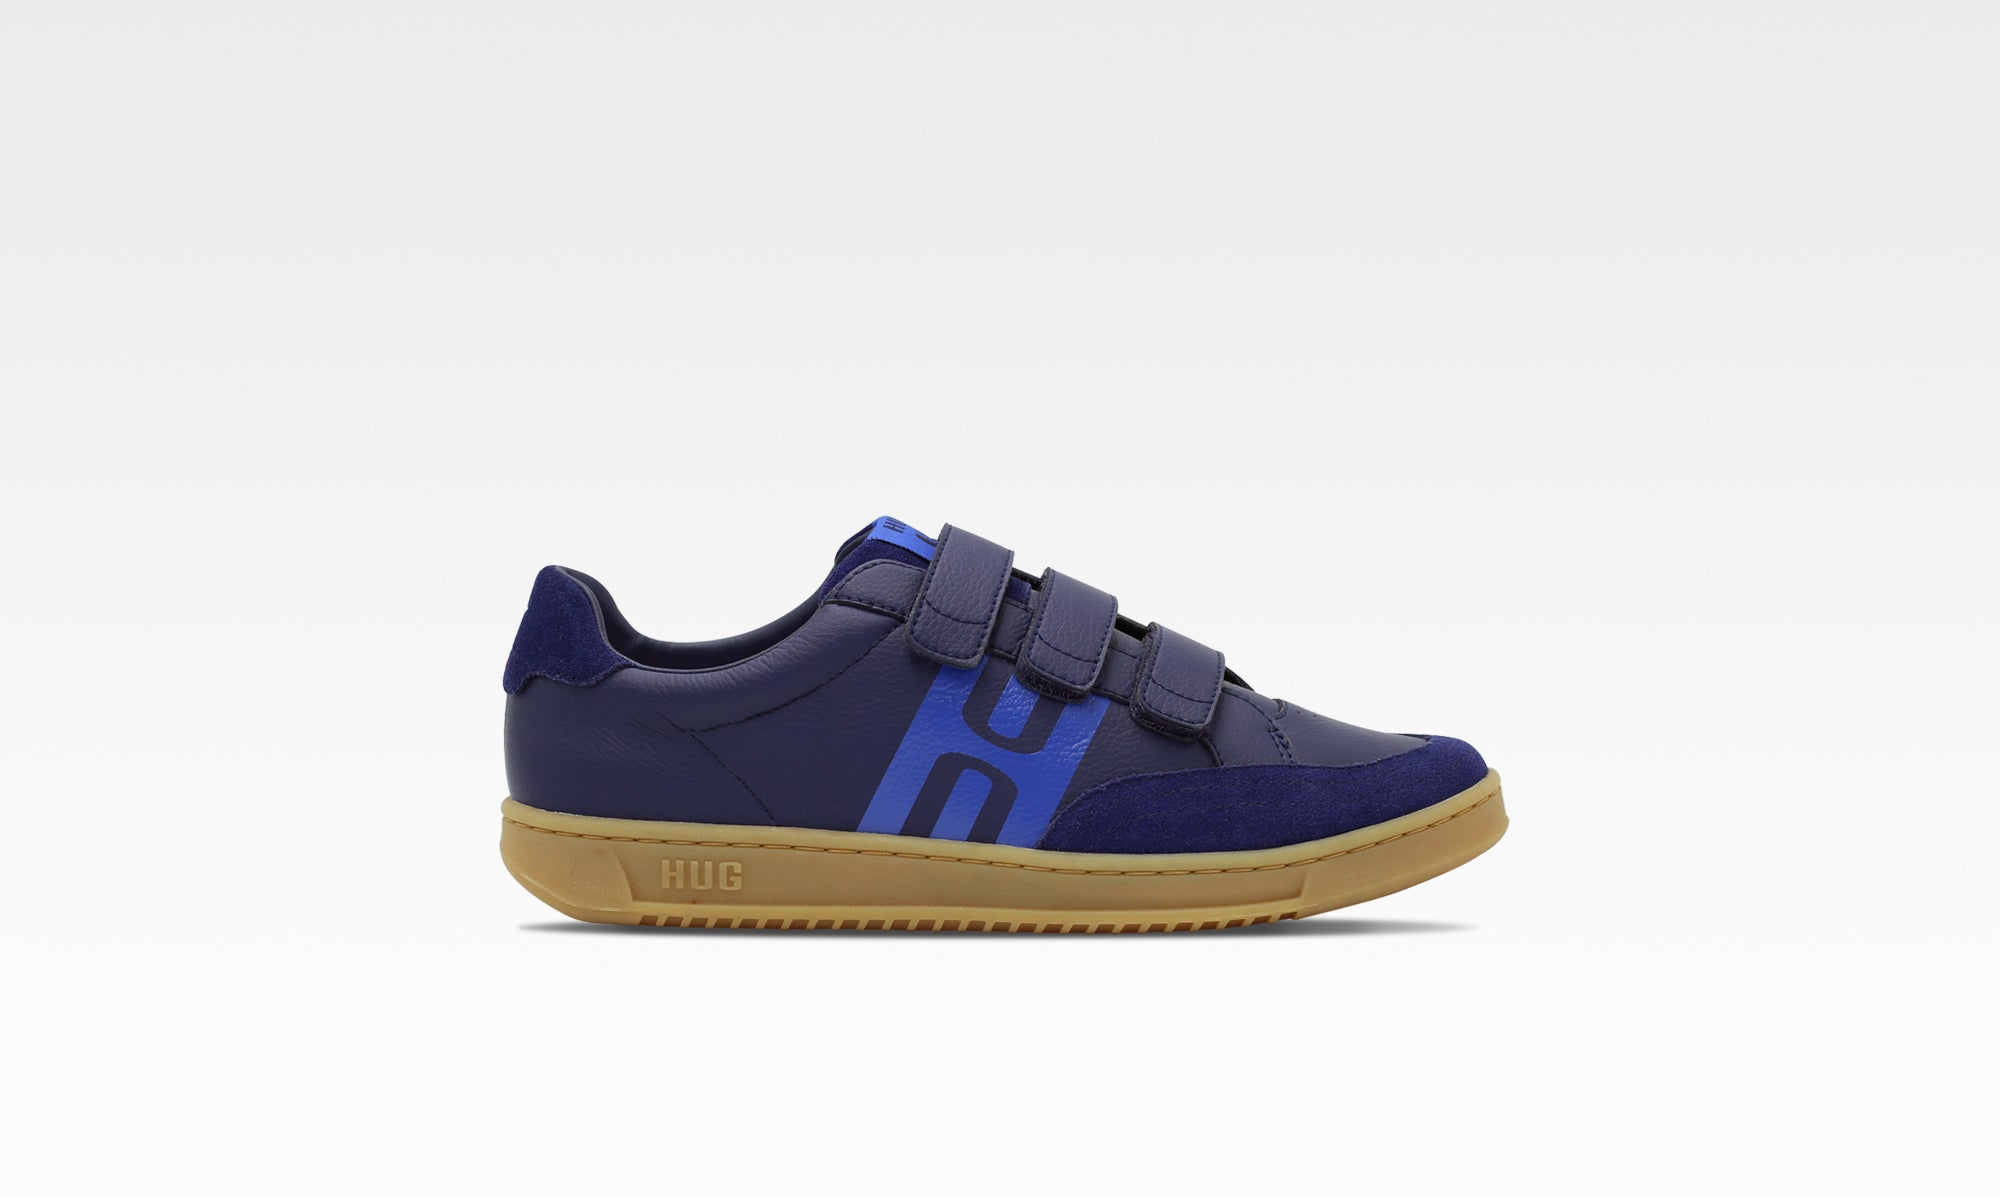 VELQ: EVENING BLUE / GUM